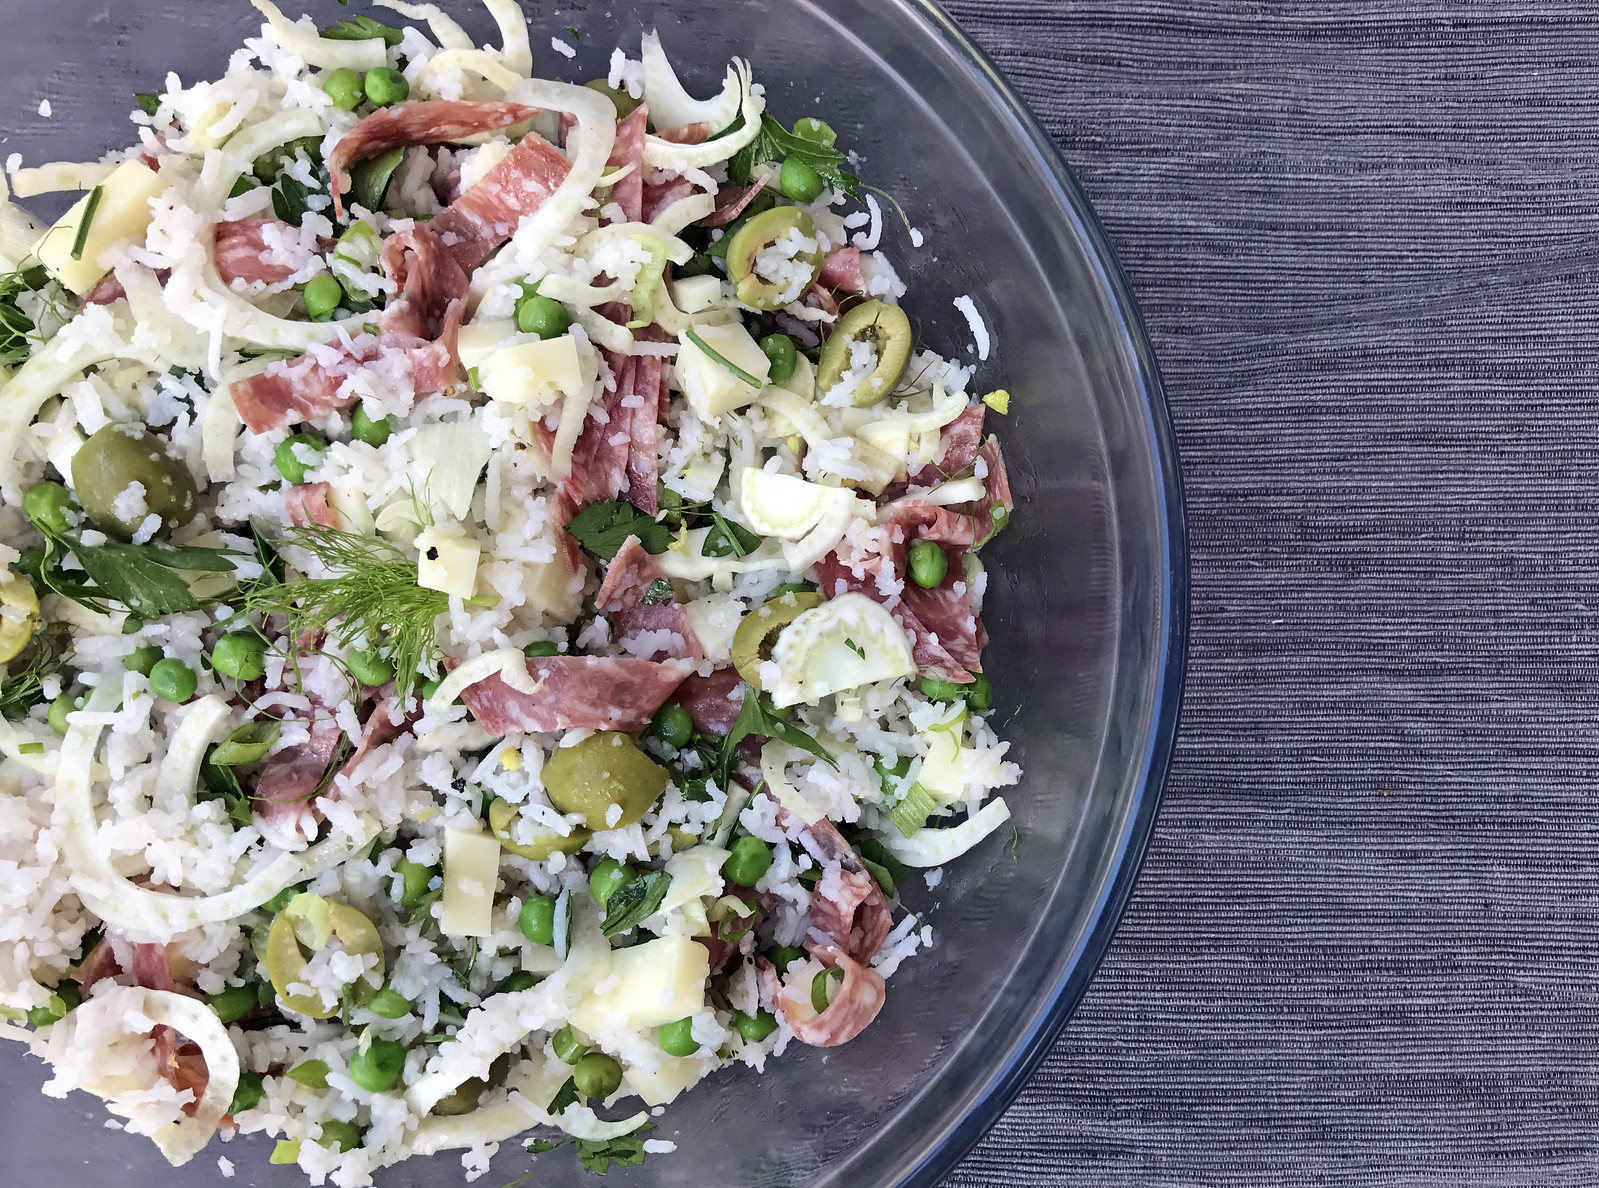 Rice salad with soppressata and mozzarella